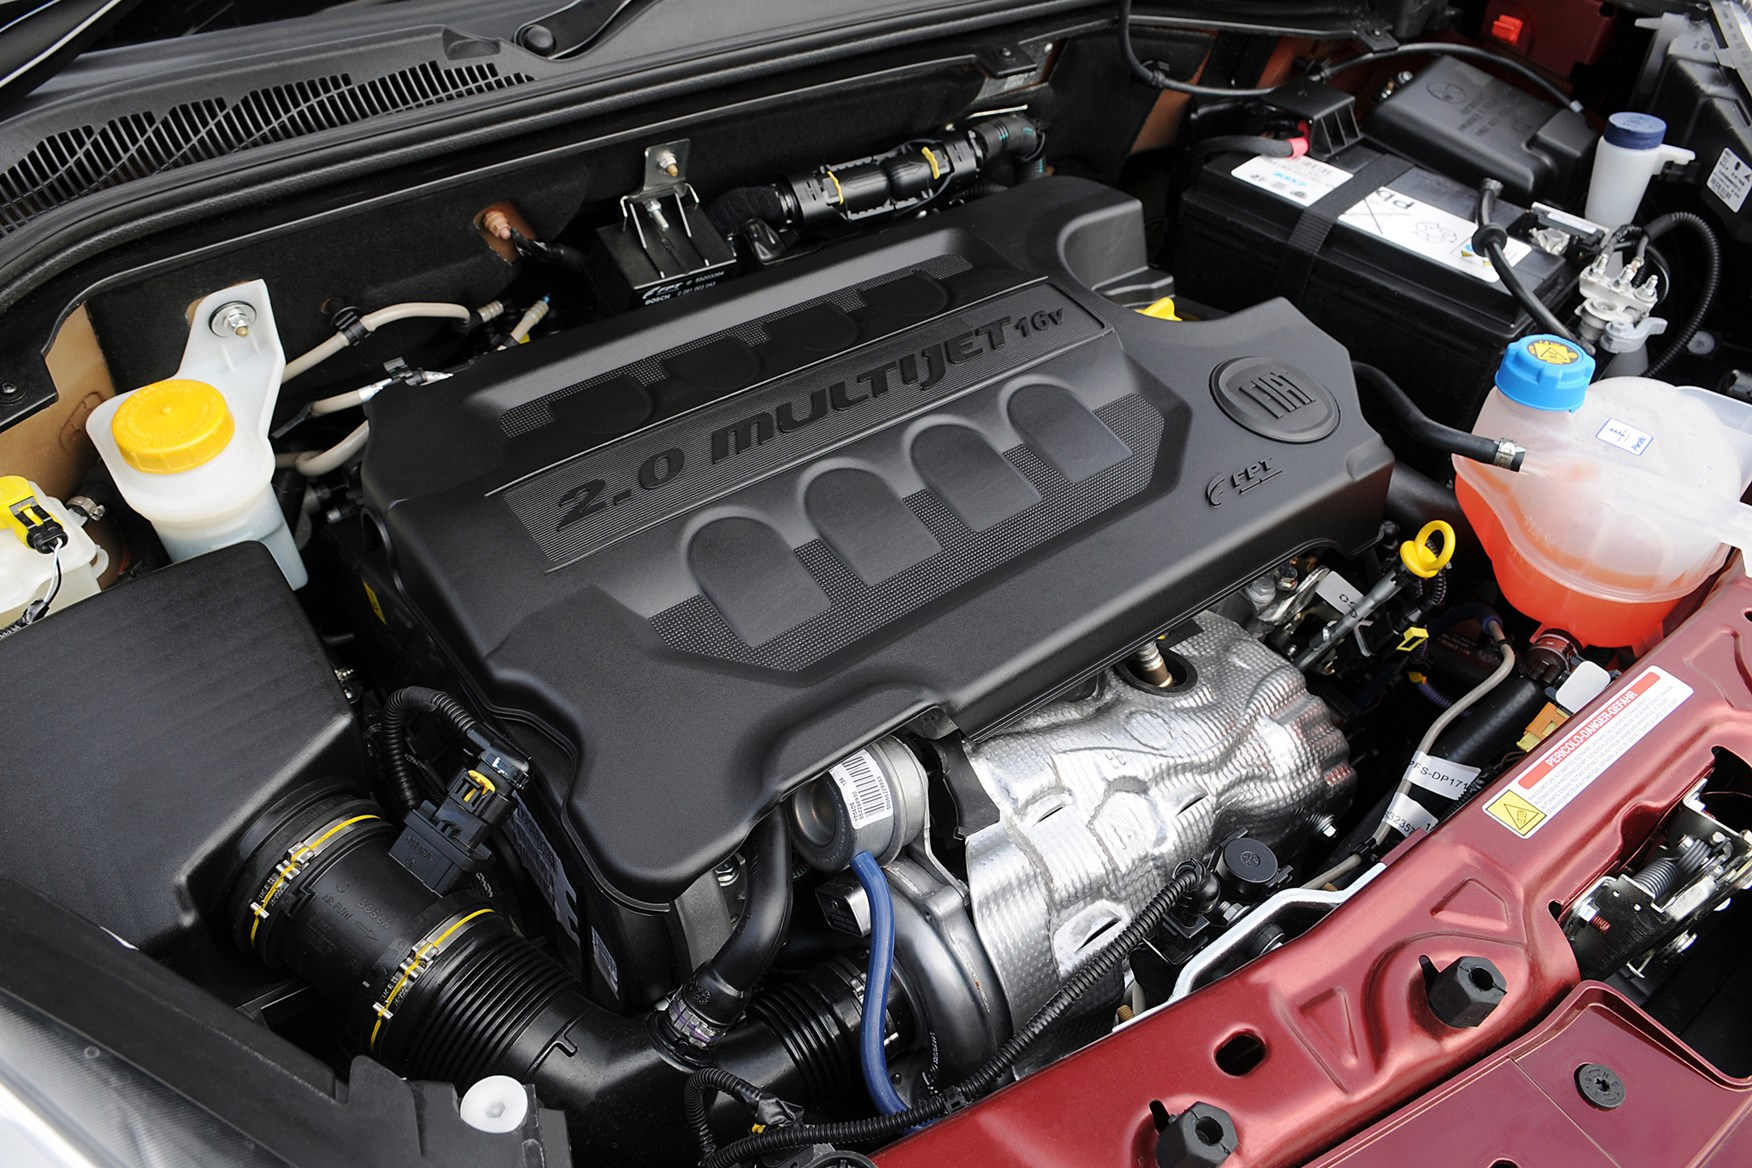 diesel units litre multijet imports to fiat maruti import india engine of